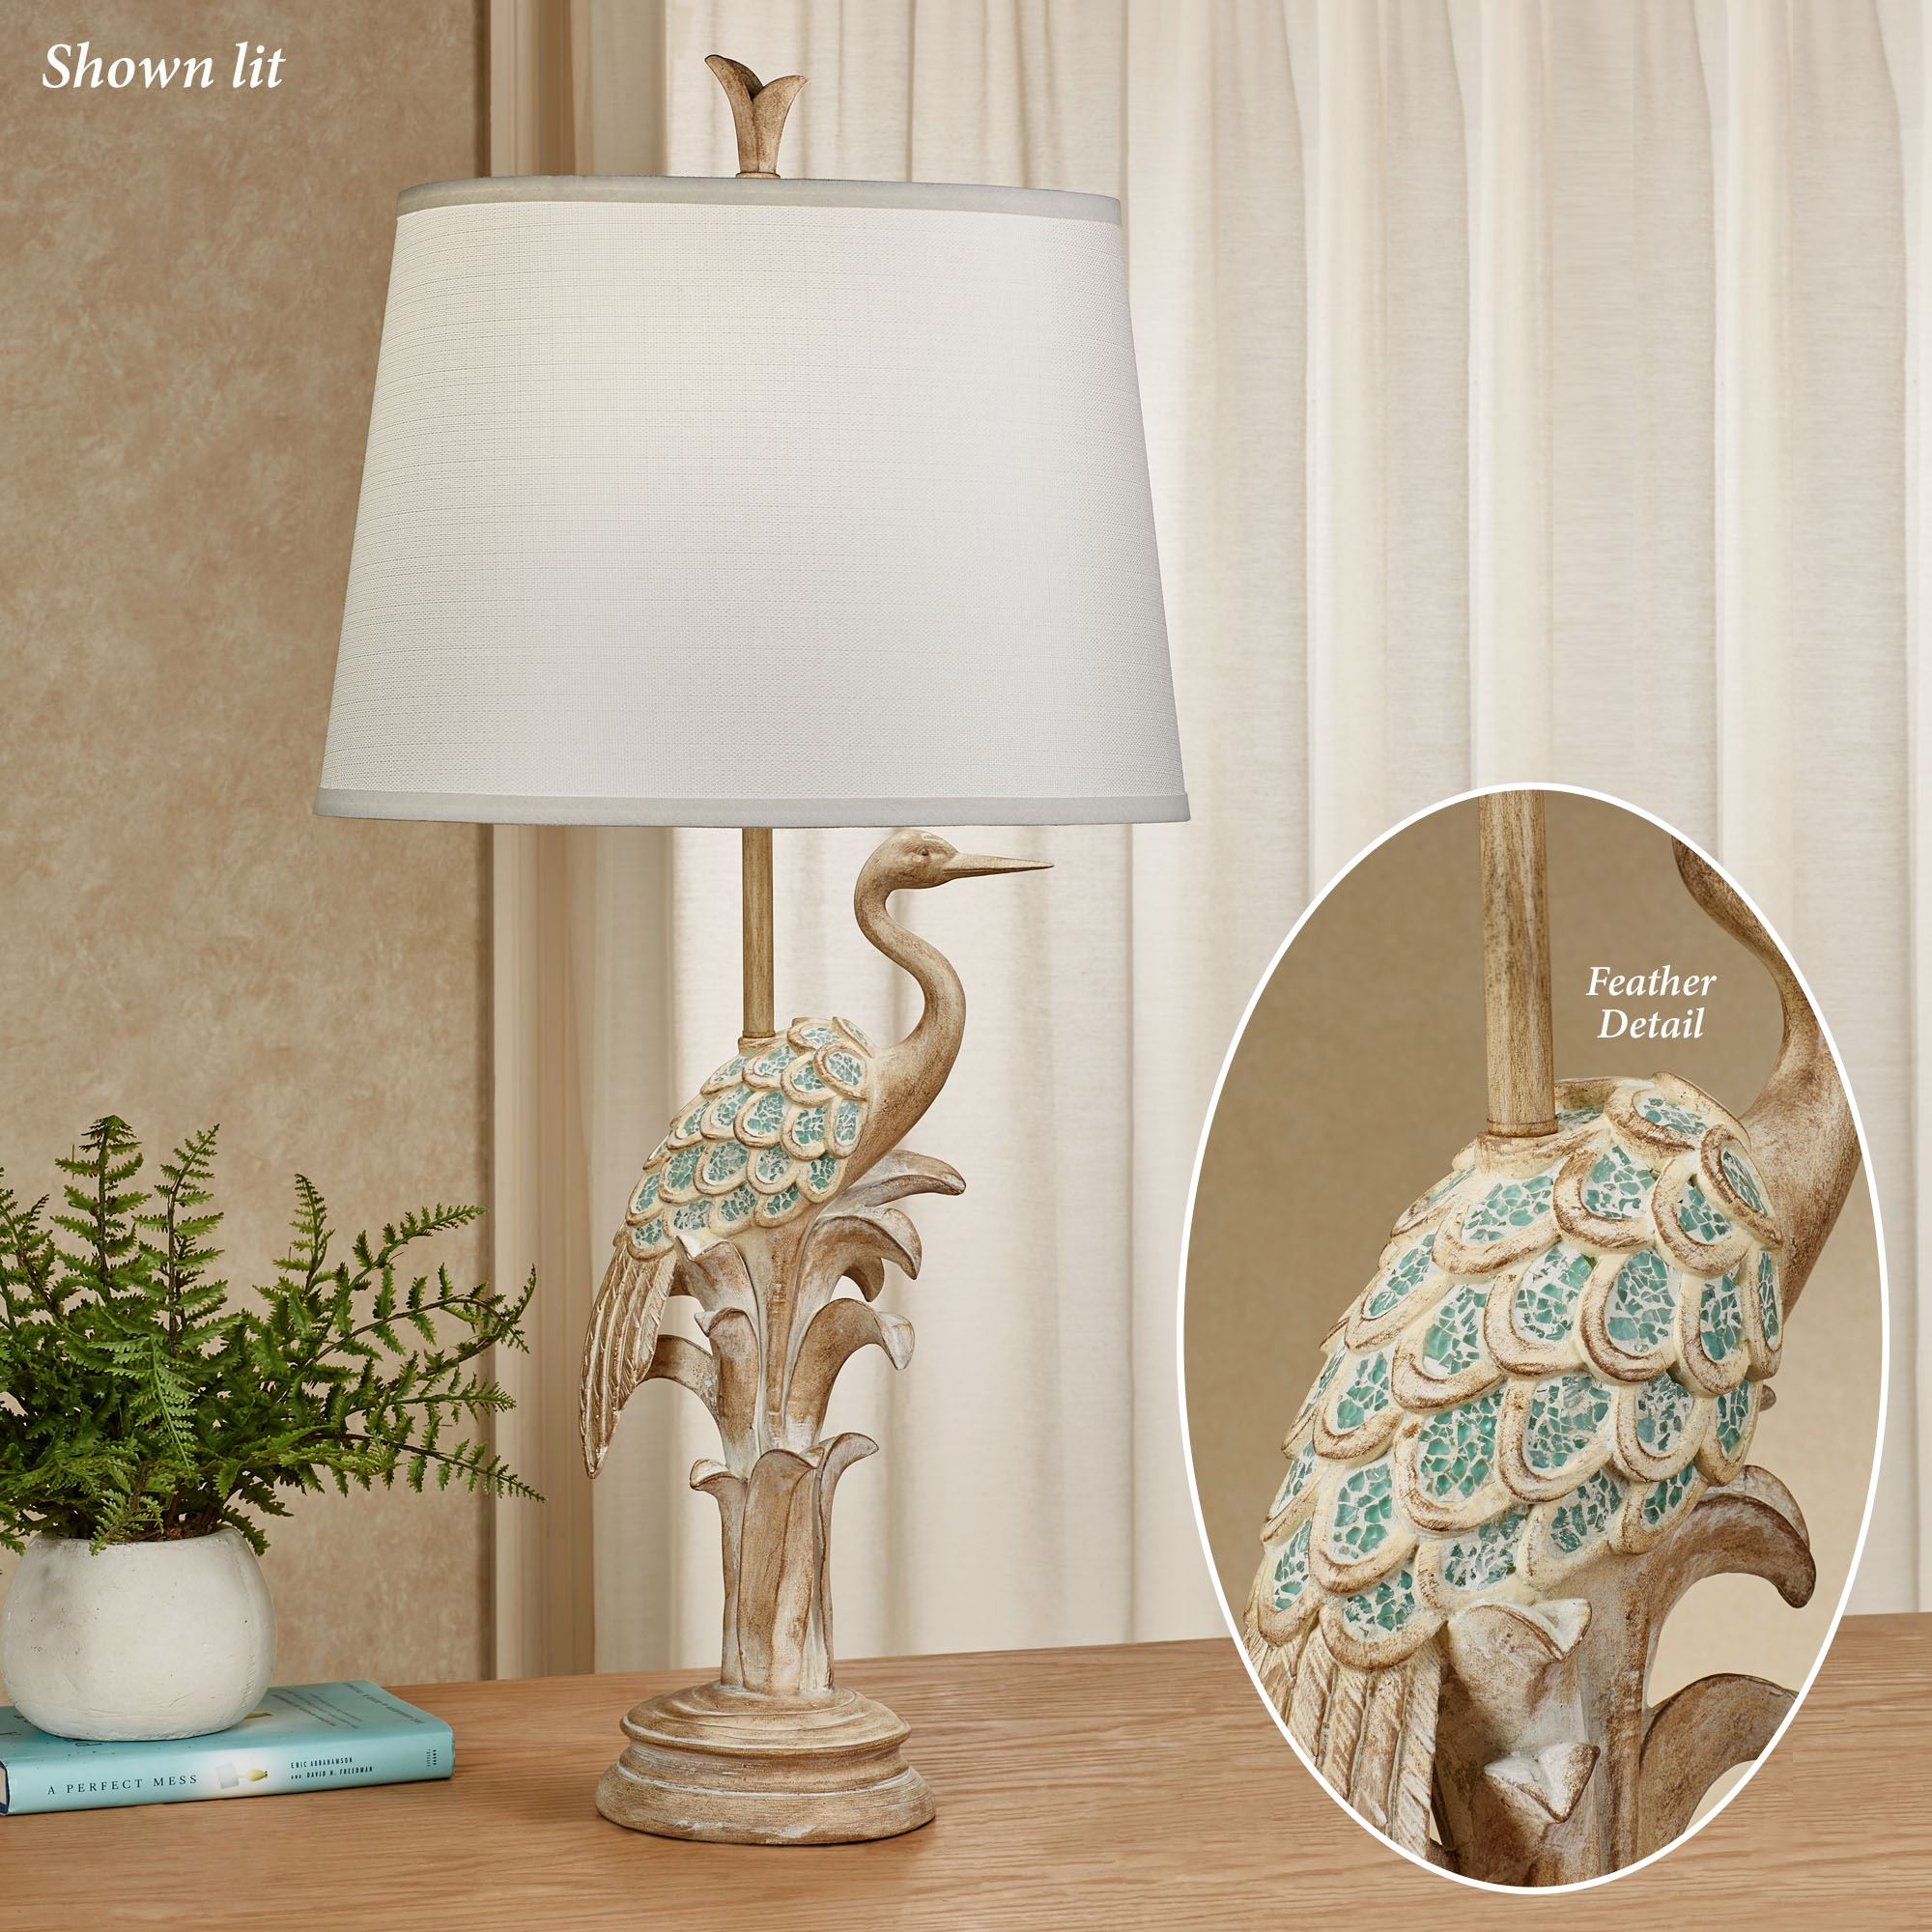 Hector The Heron Table Lamp Natural Touch To Zoom